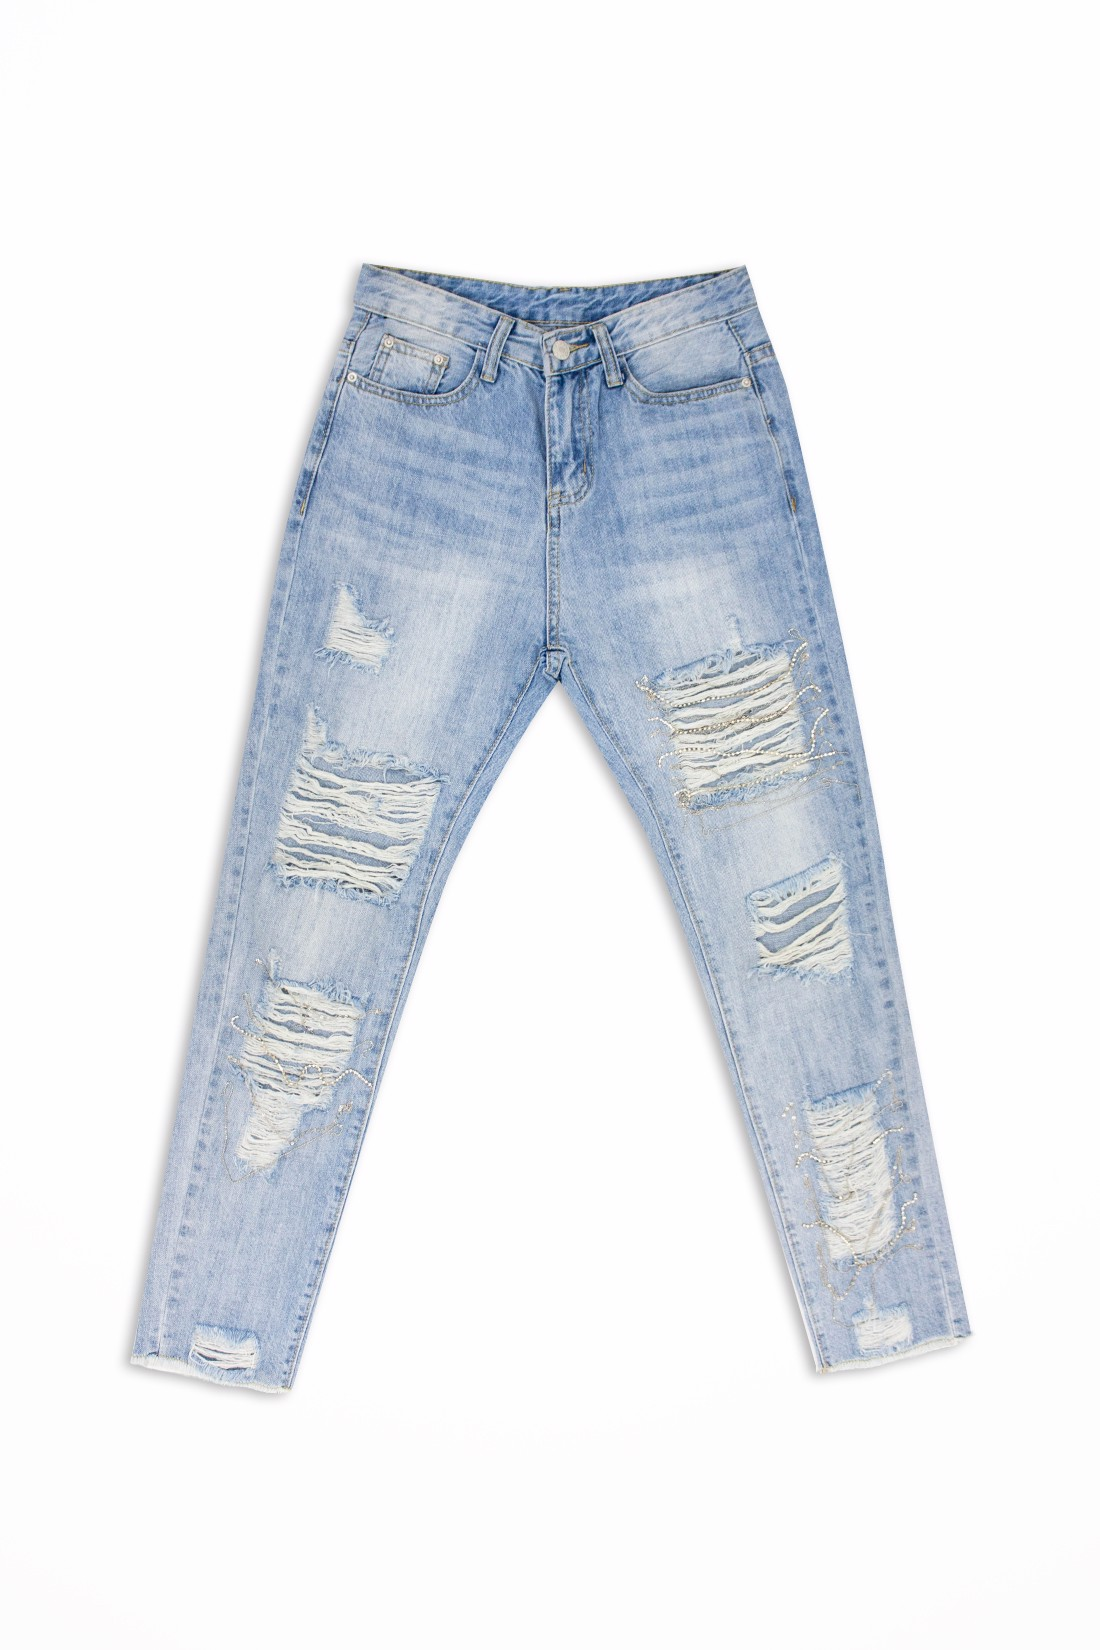 Handmade Ripped Jeans